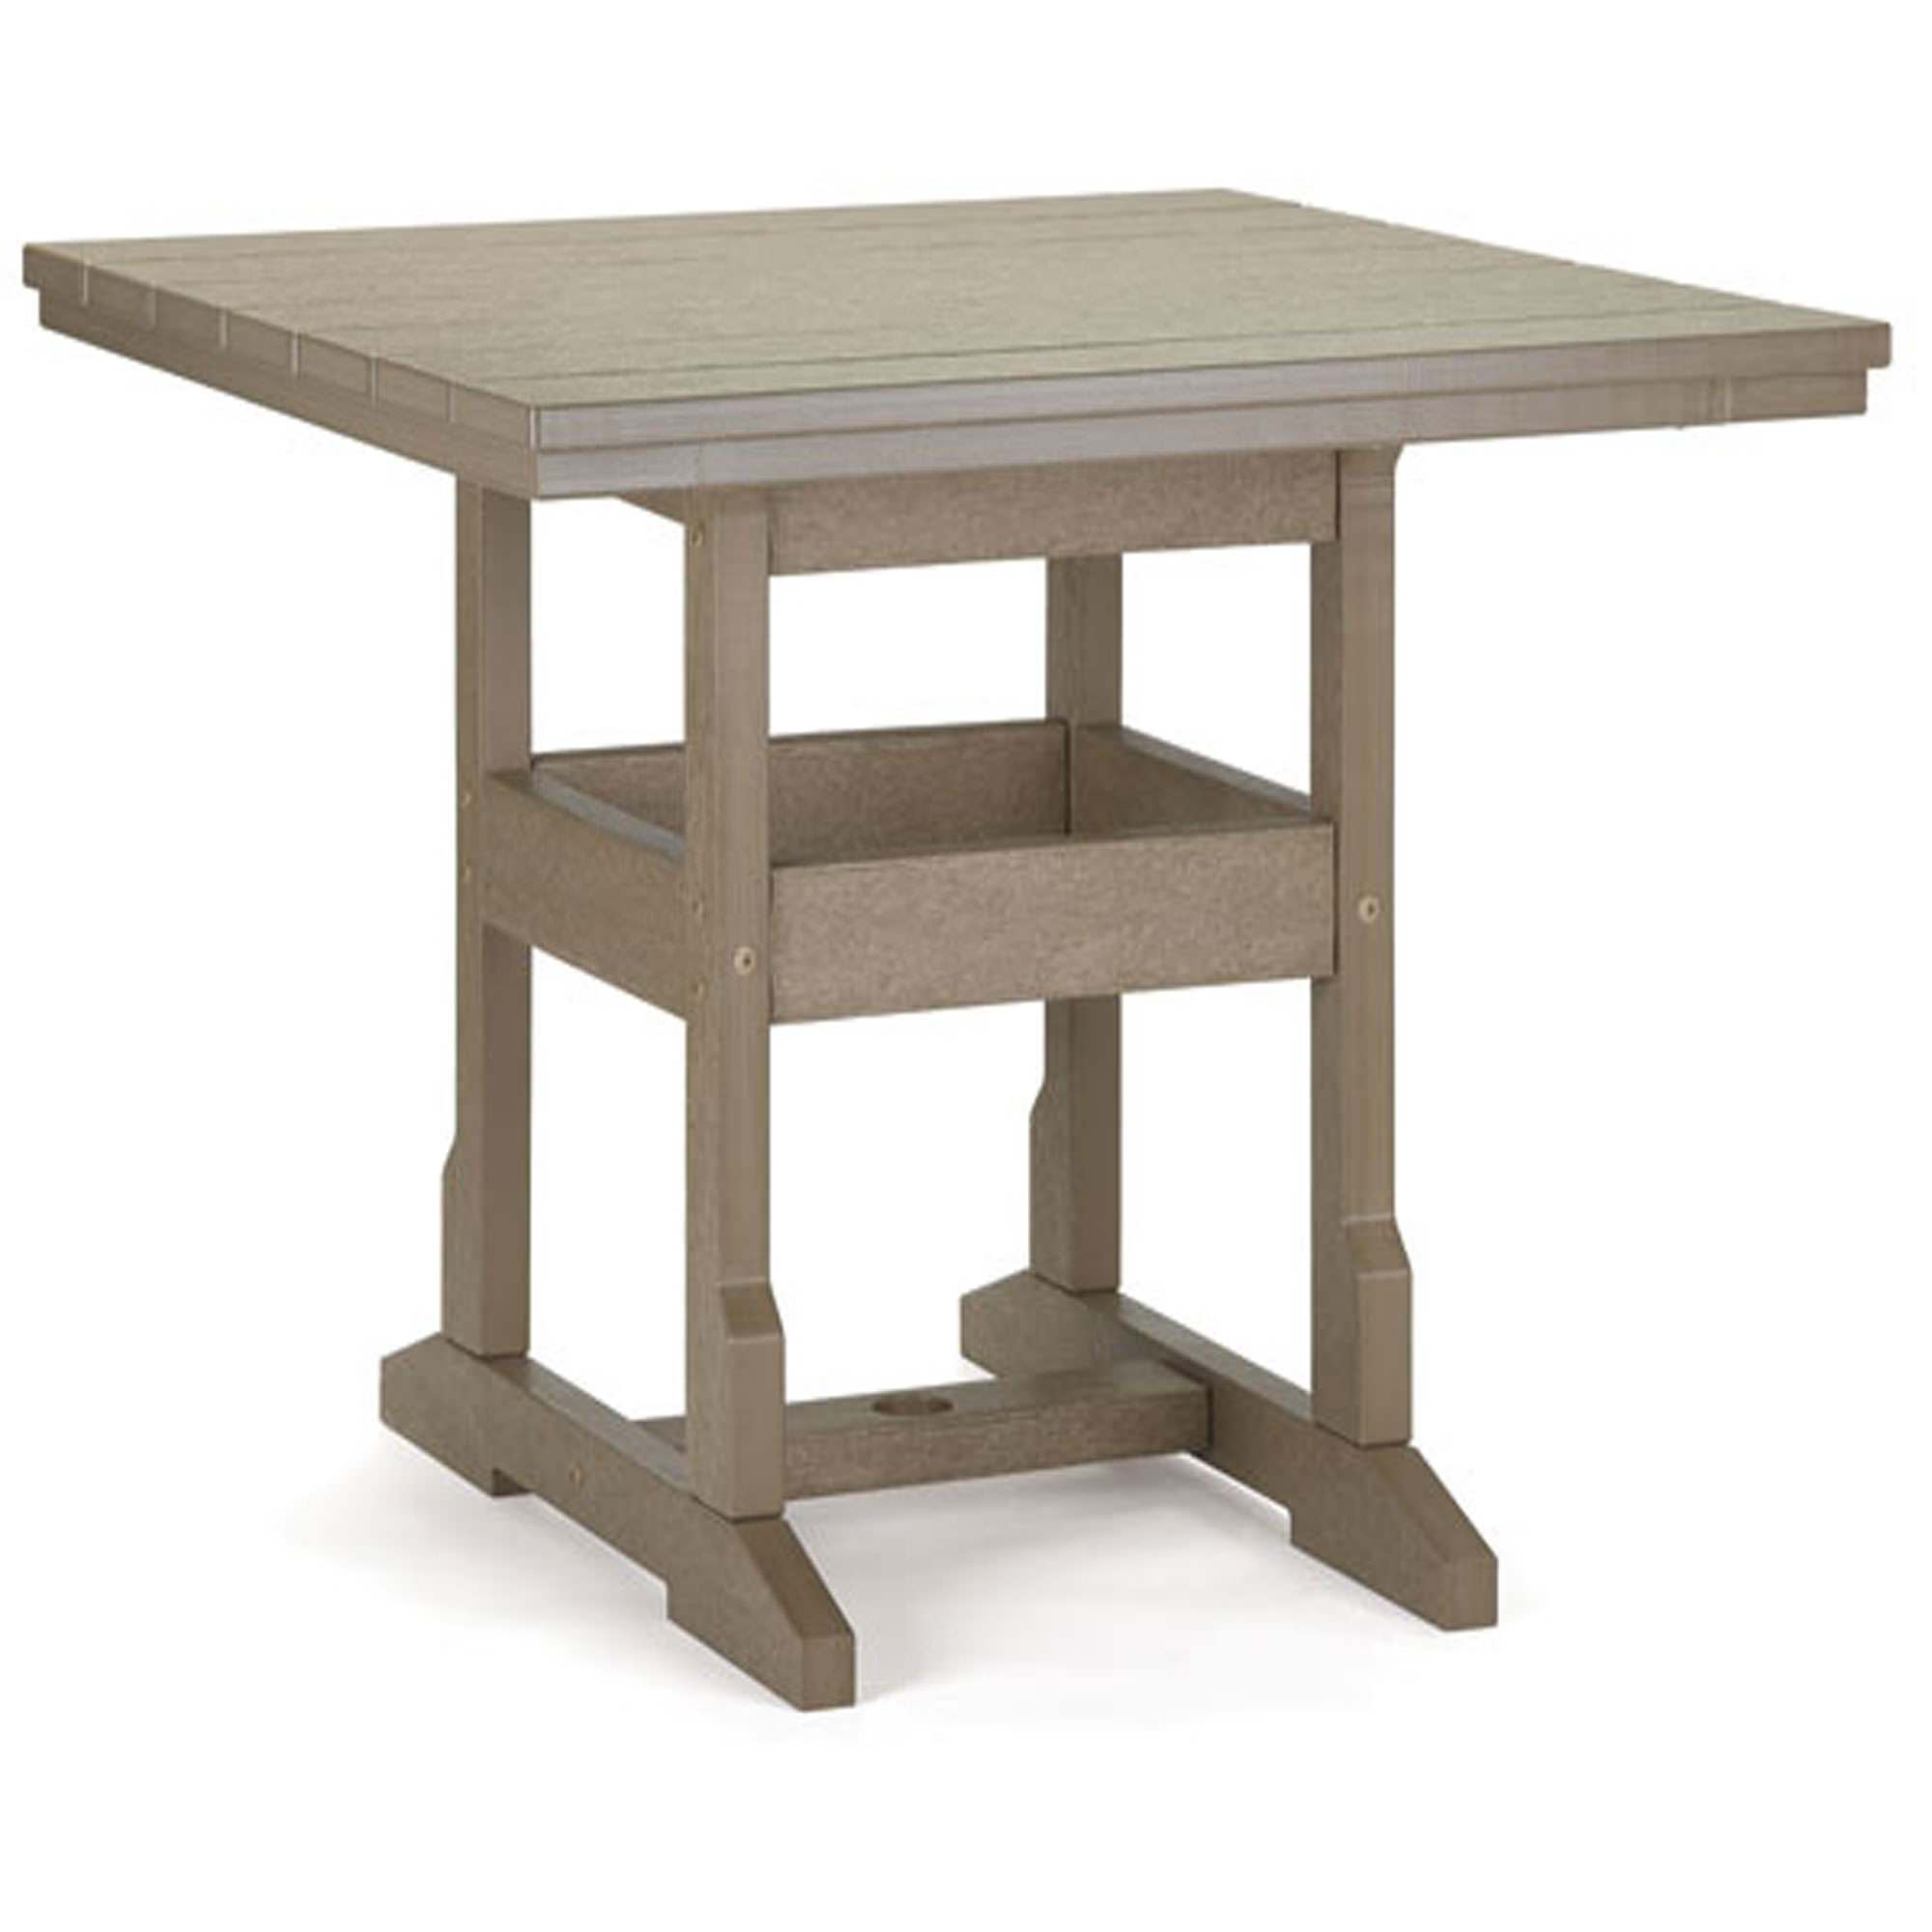 36 inch square dining height table